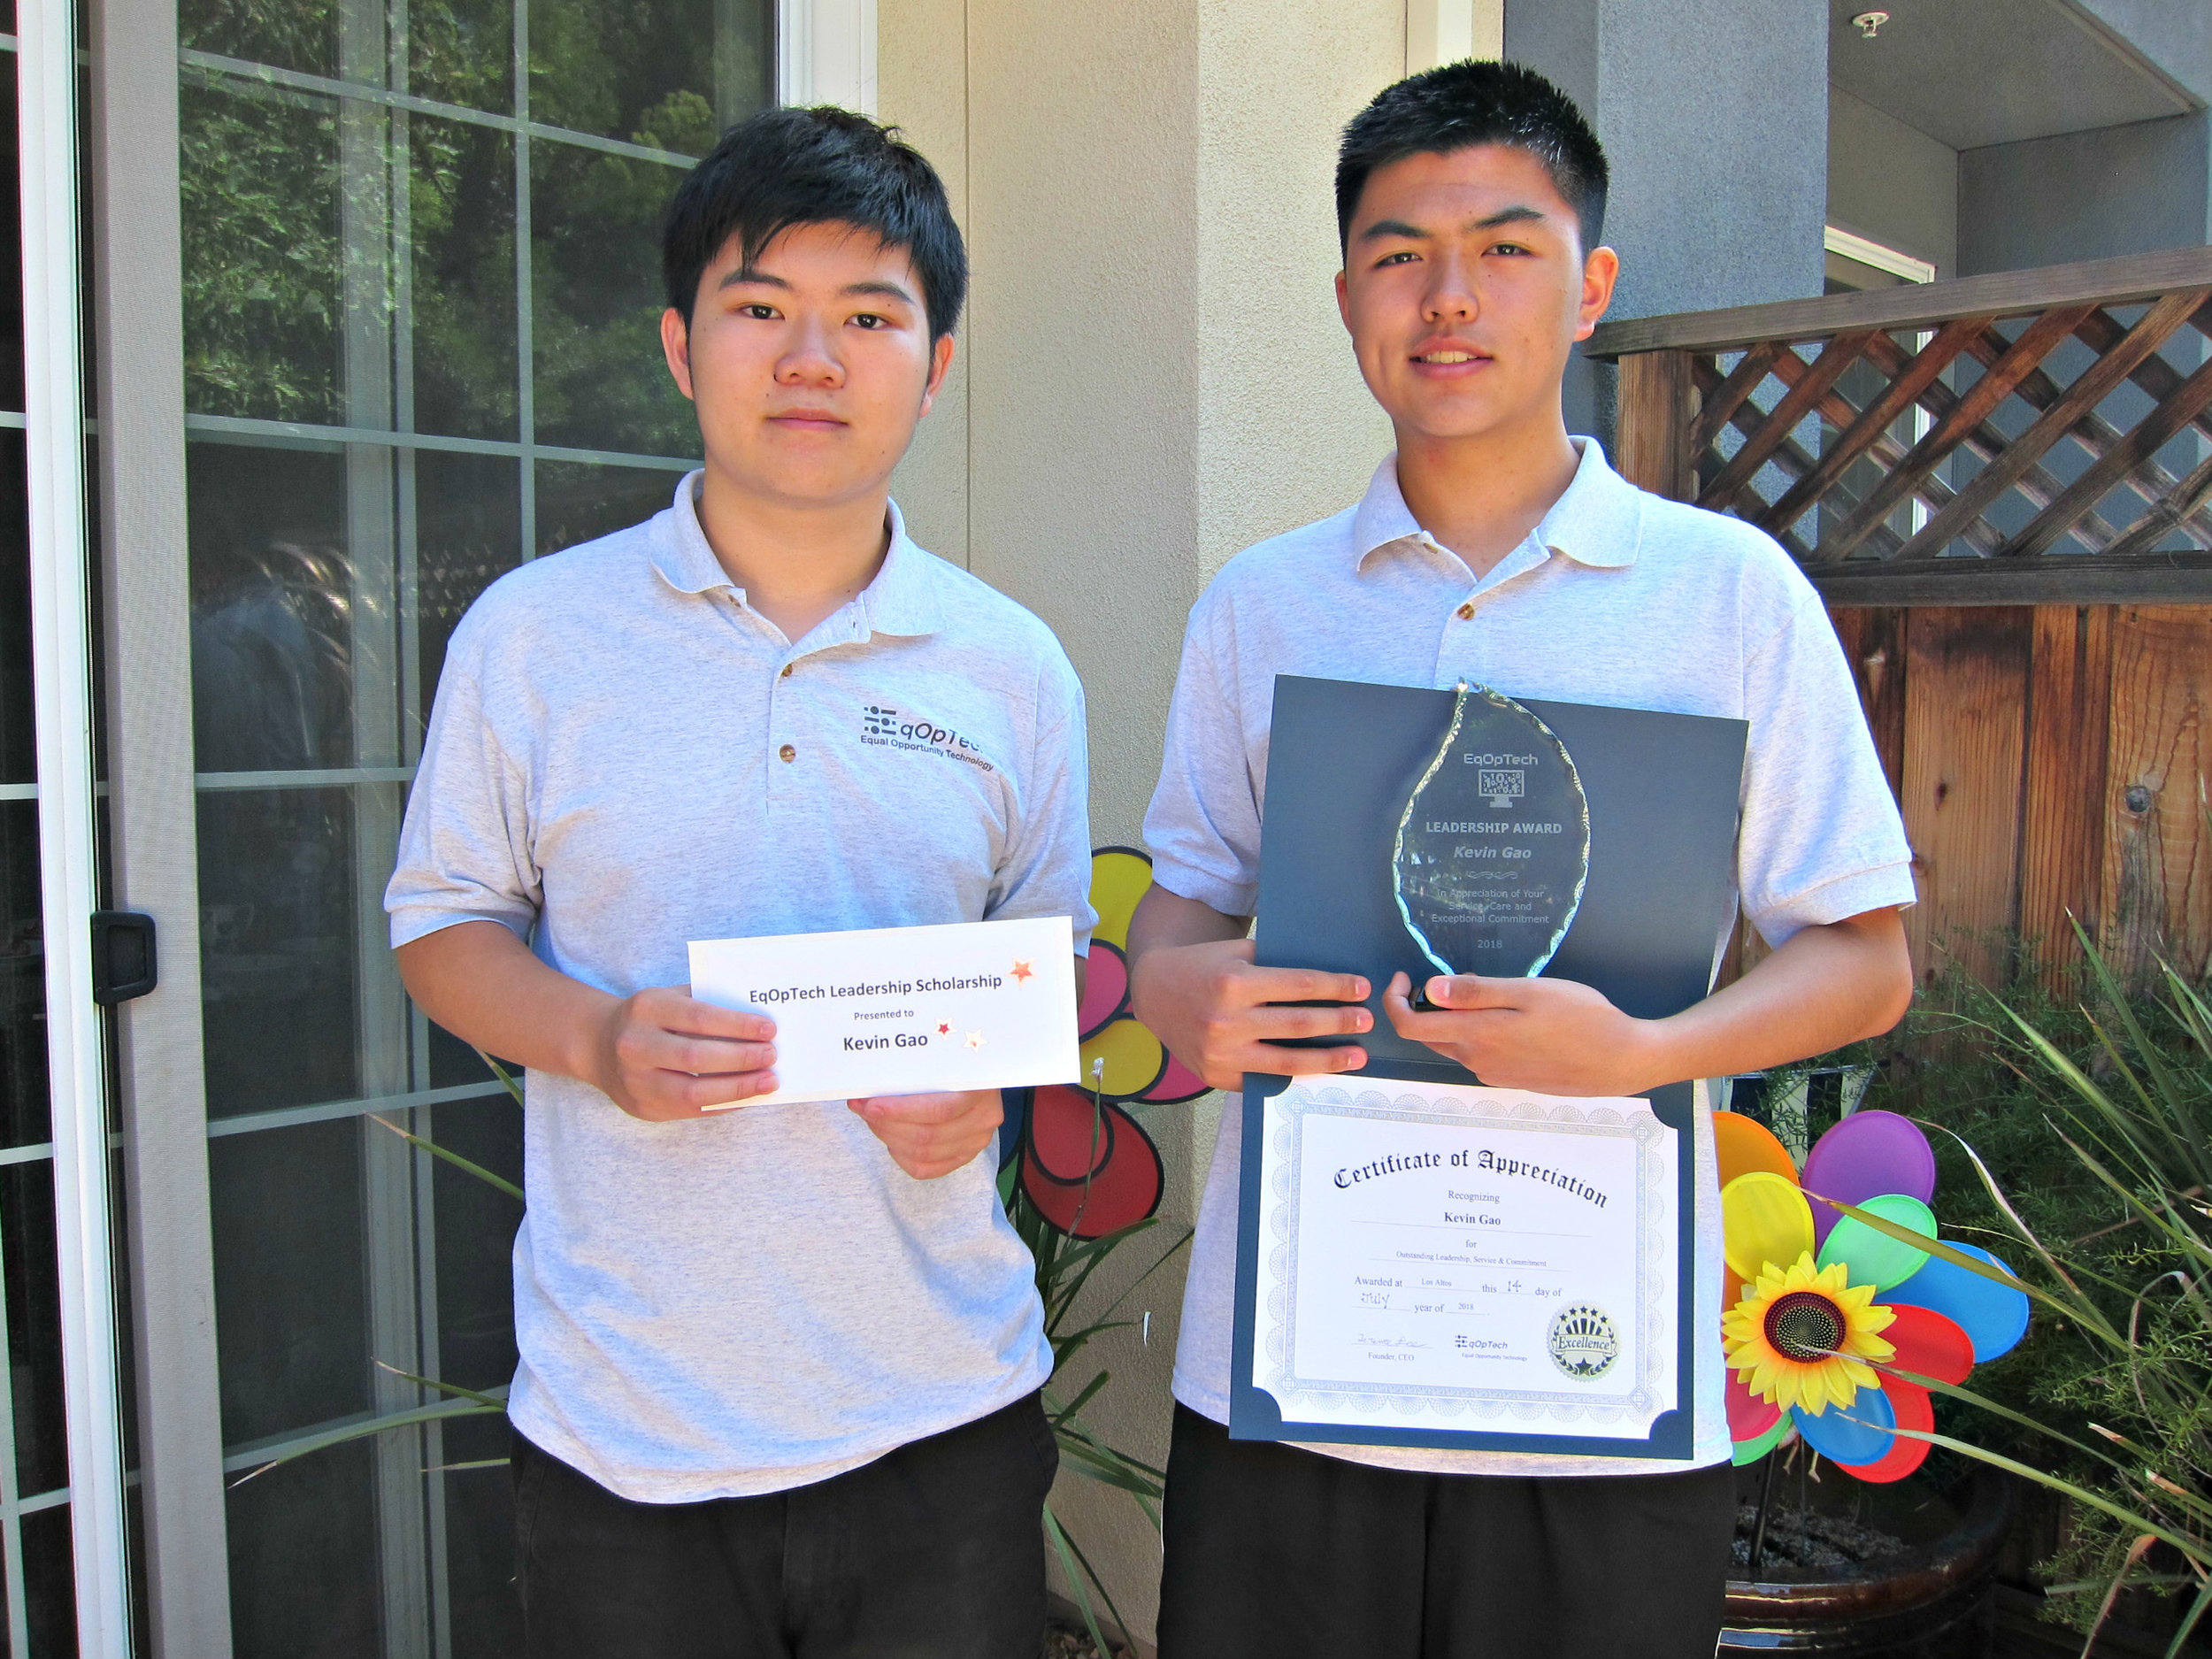 Kevin Gao (right), Terence Lee